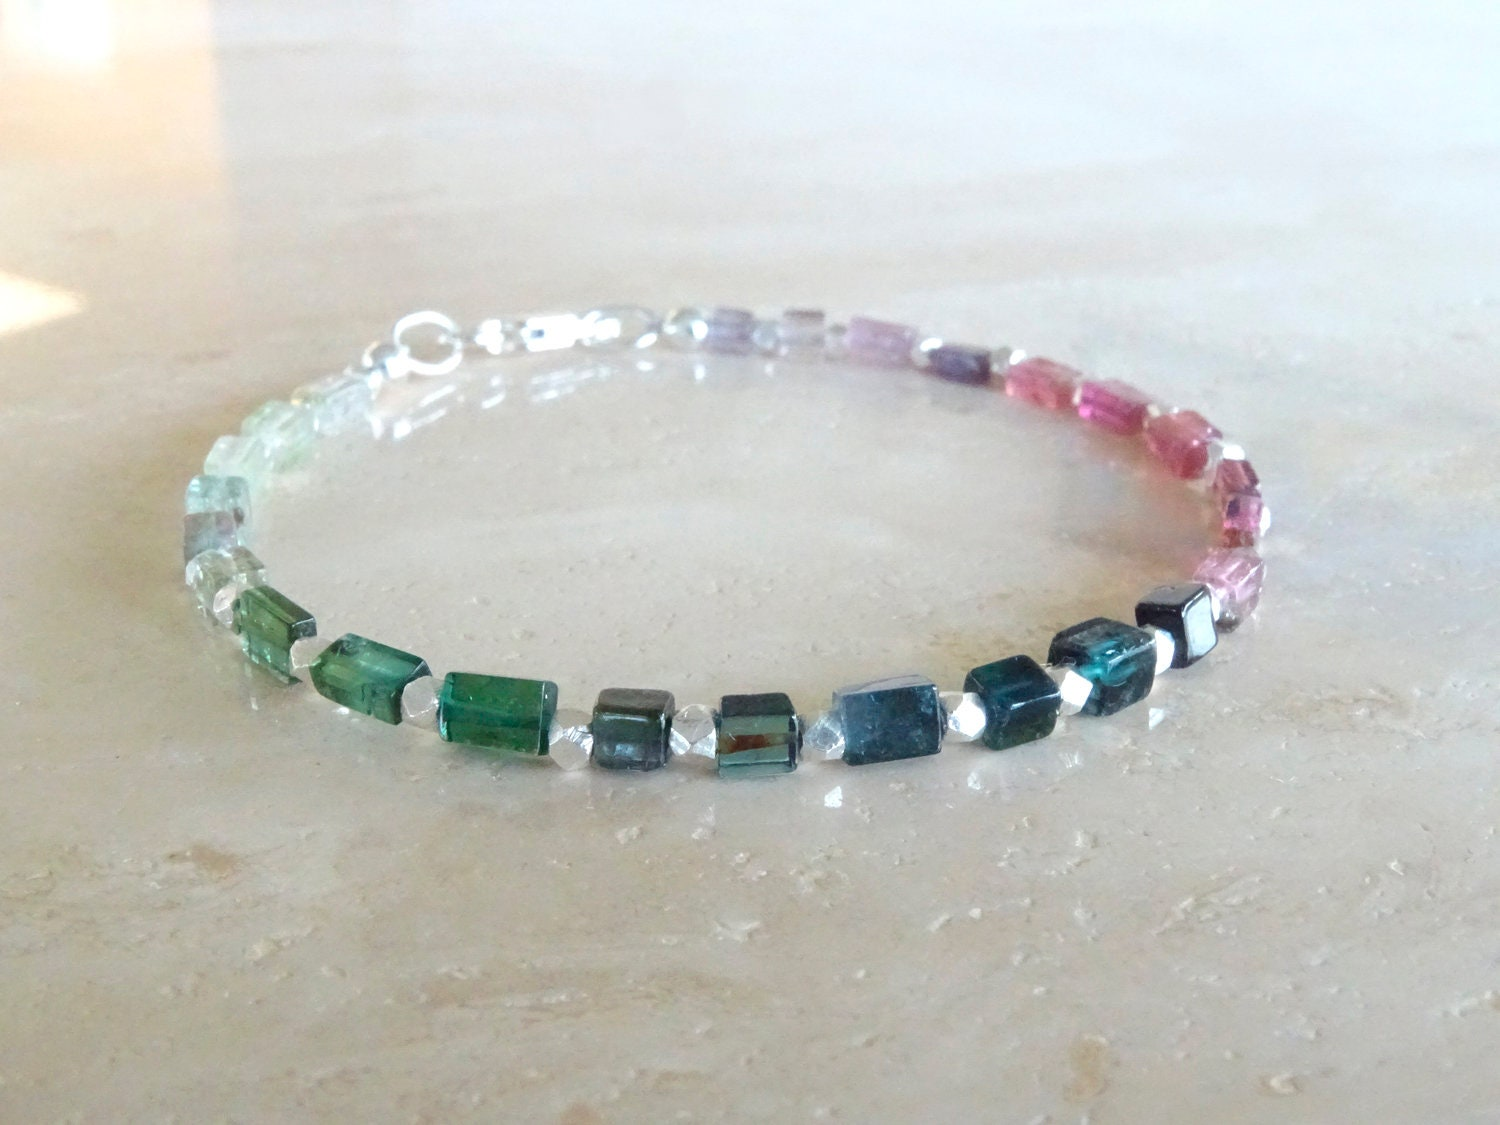 Rainbow Tourmaline Bracelet Colorful Square Beads Indicolite Beaded Jewelry October Birthday Gift For Her BFF